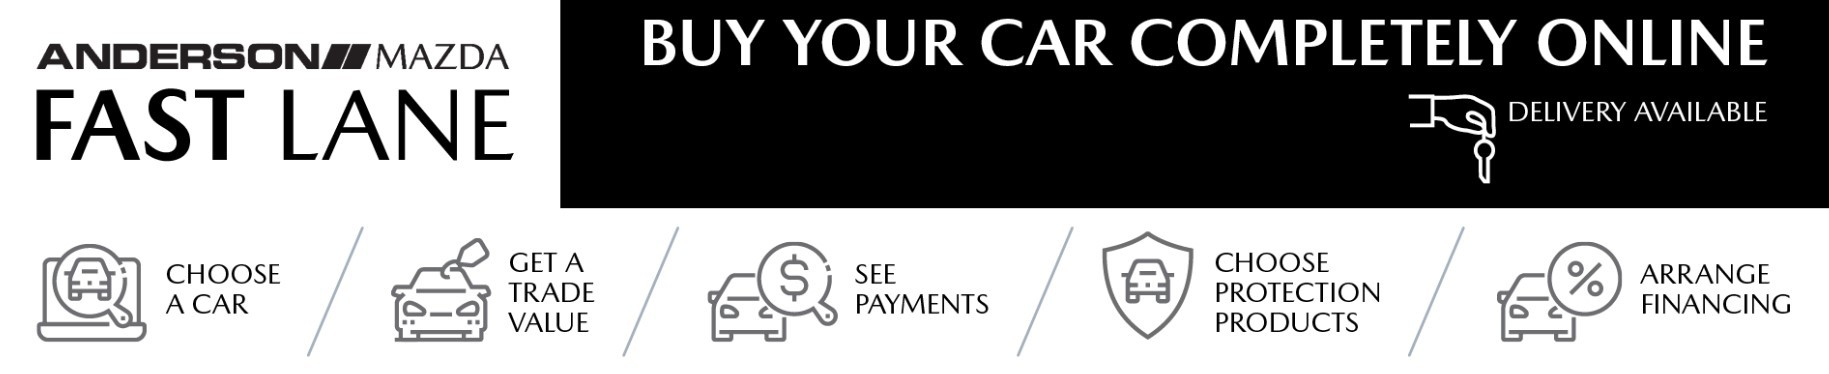 Anderson Mazda Fast Lane - Buy Your Car Online